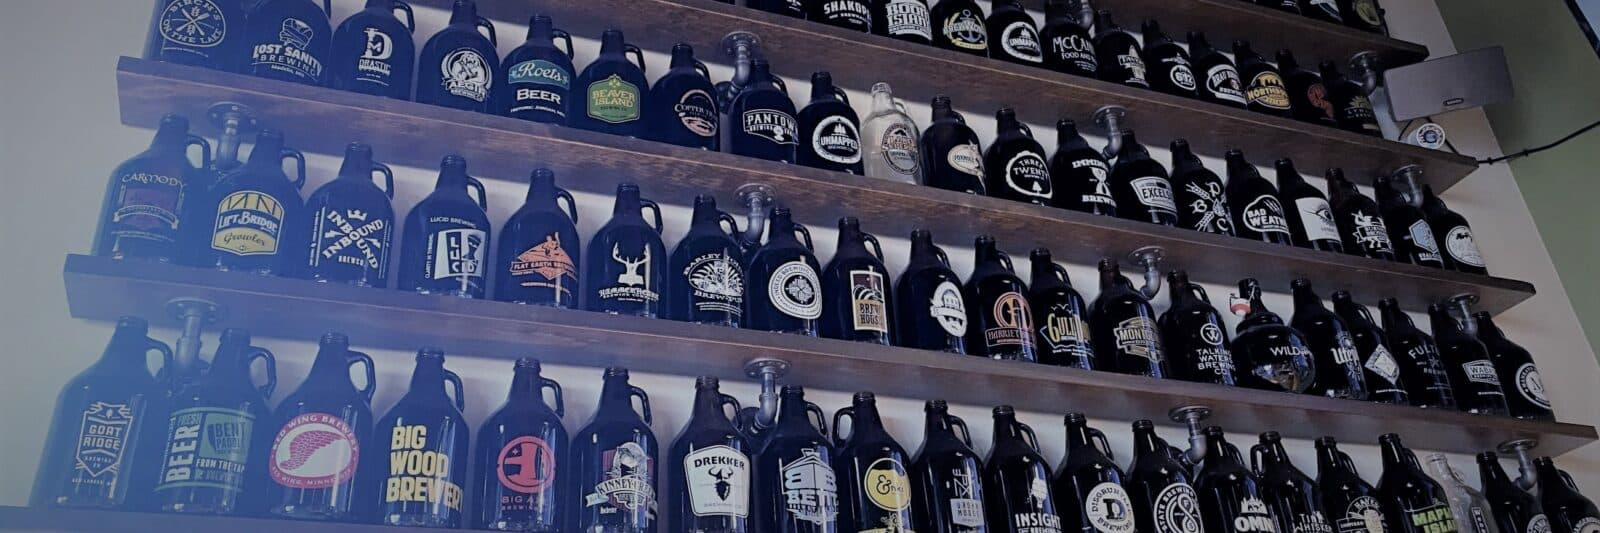 Growler wall at Jack Pine Brewery, MN